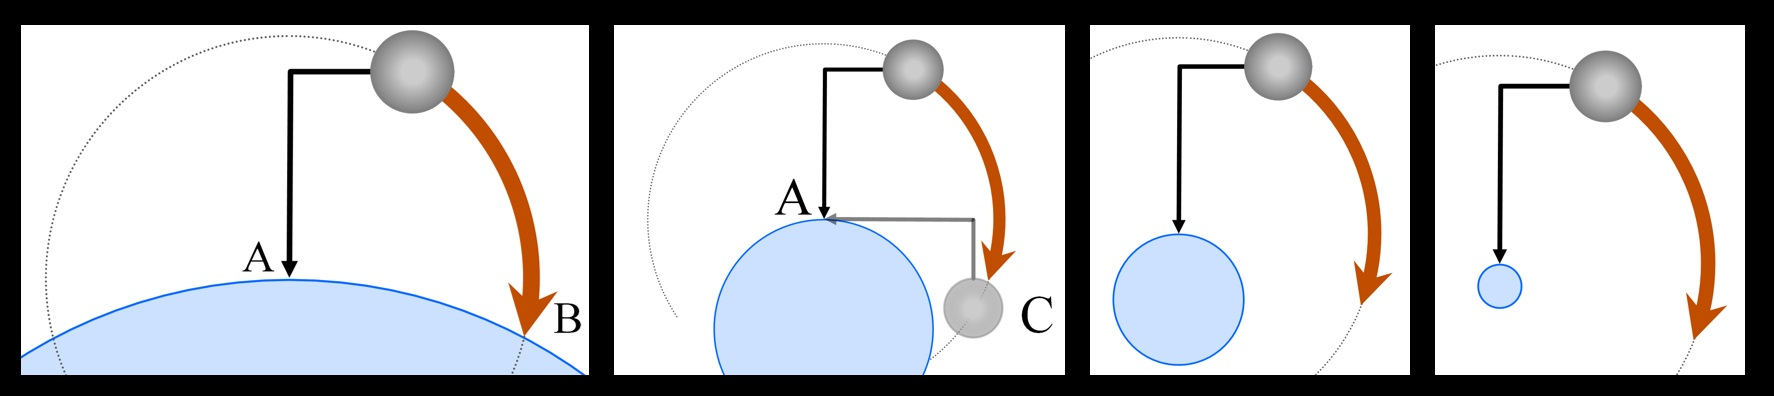 The iron ball falls in a circular path, even as Earth is imagined to be smaller and smaller.